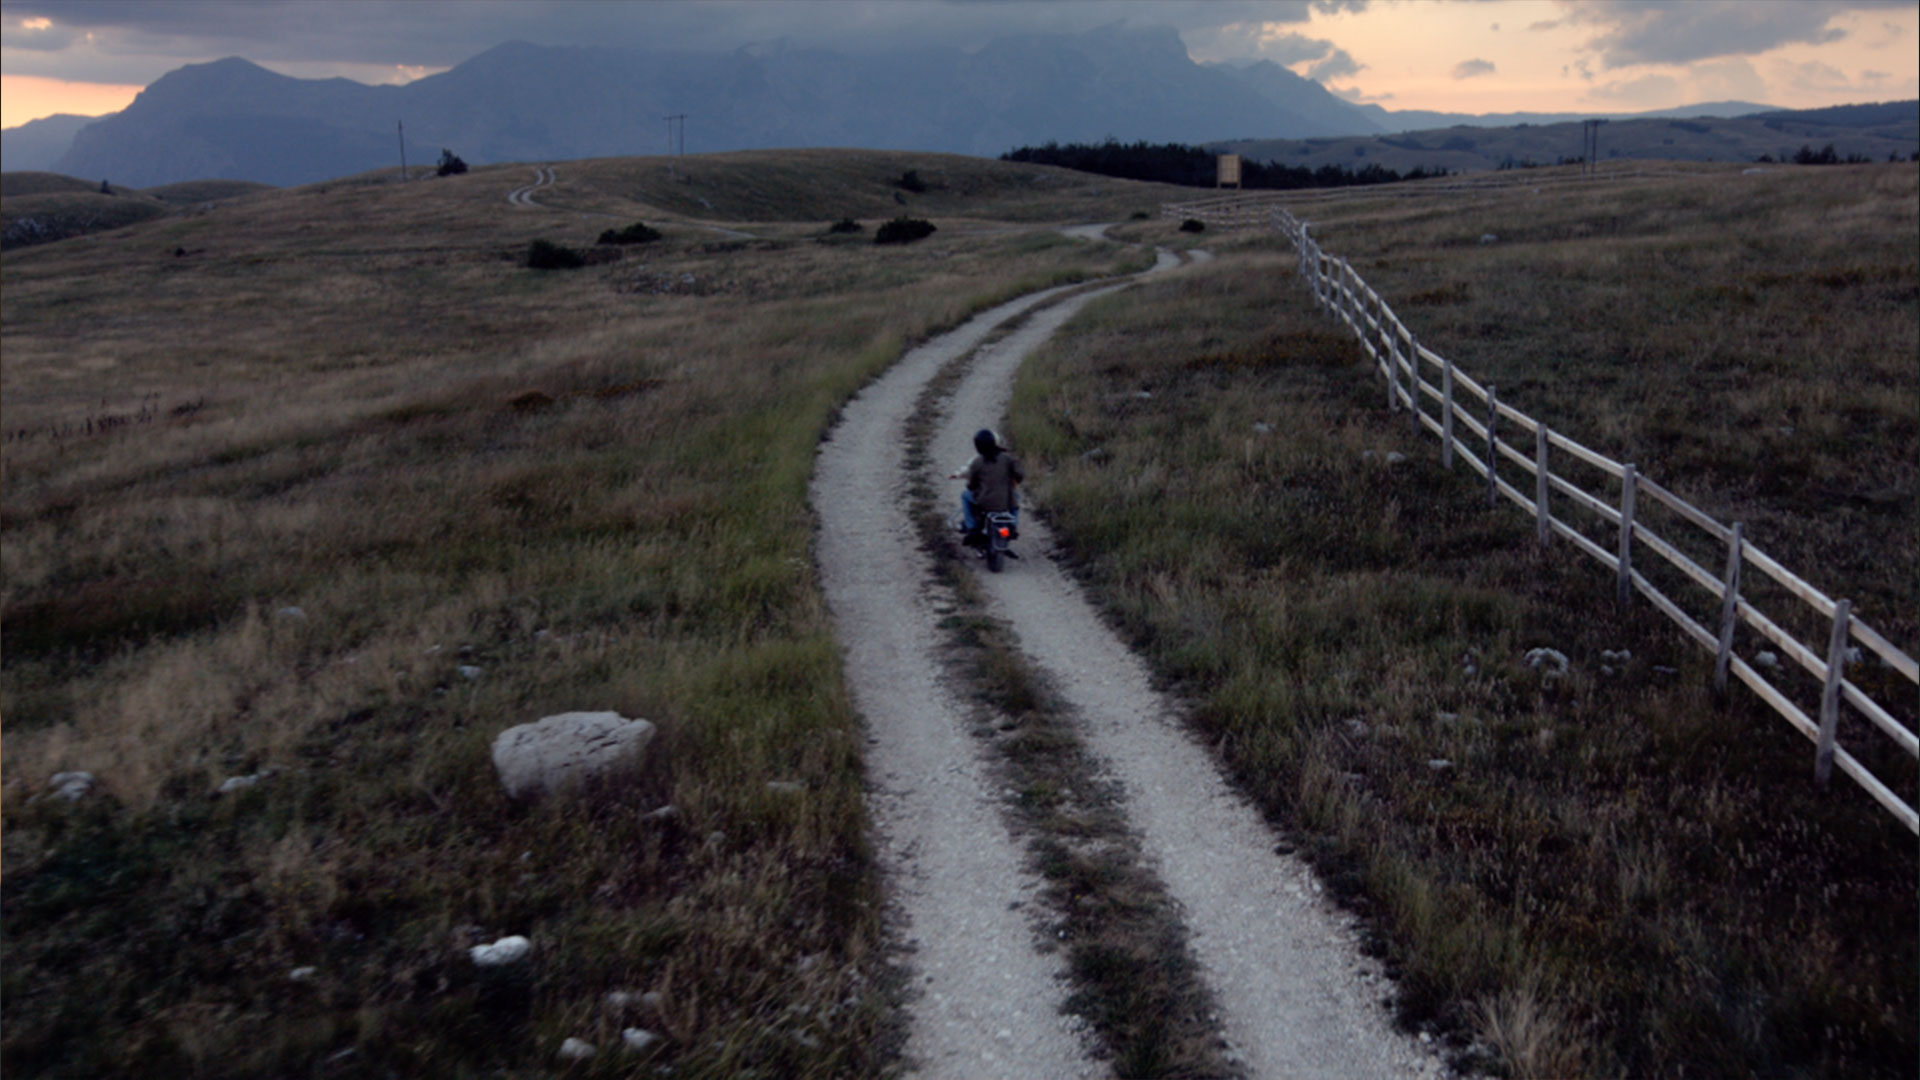 grass sky outdoor hiking mountain bicycle dirt highland